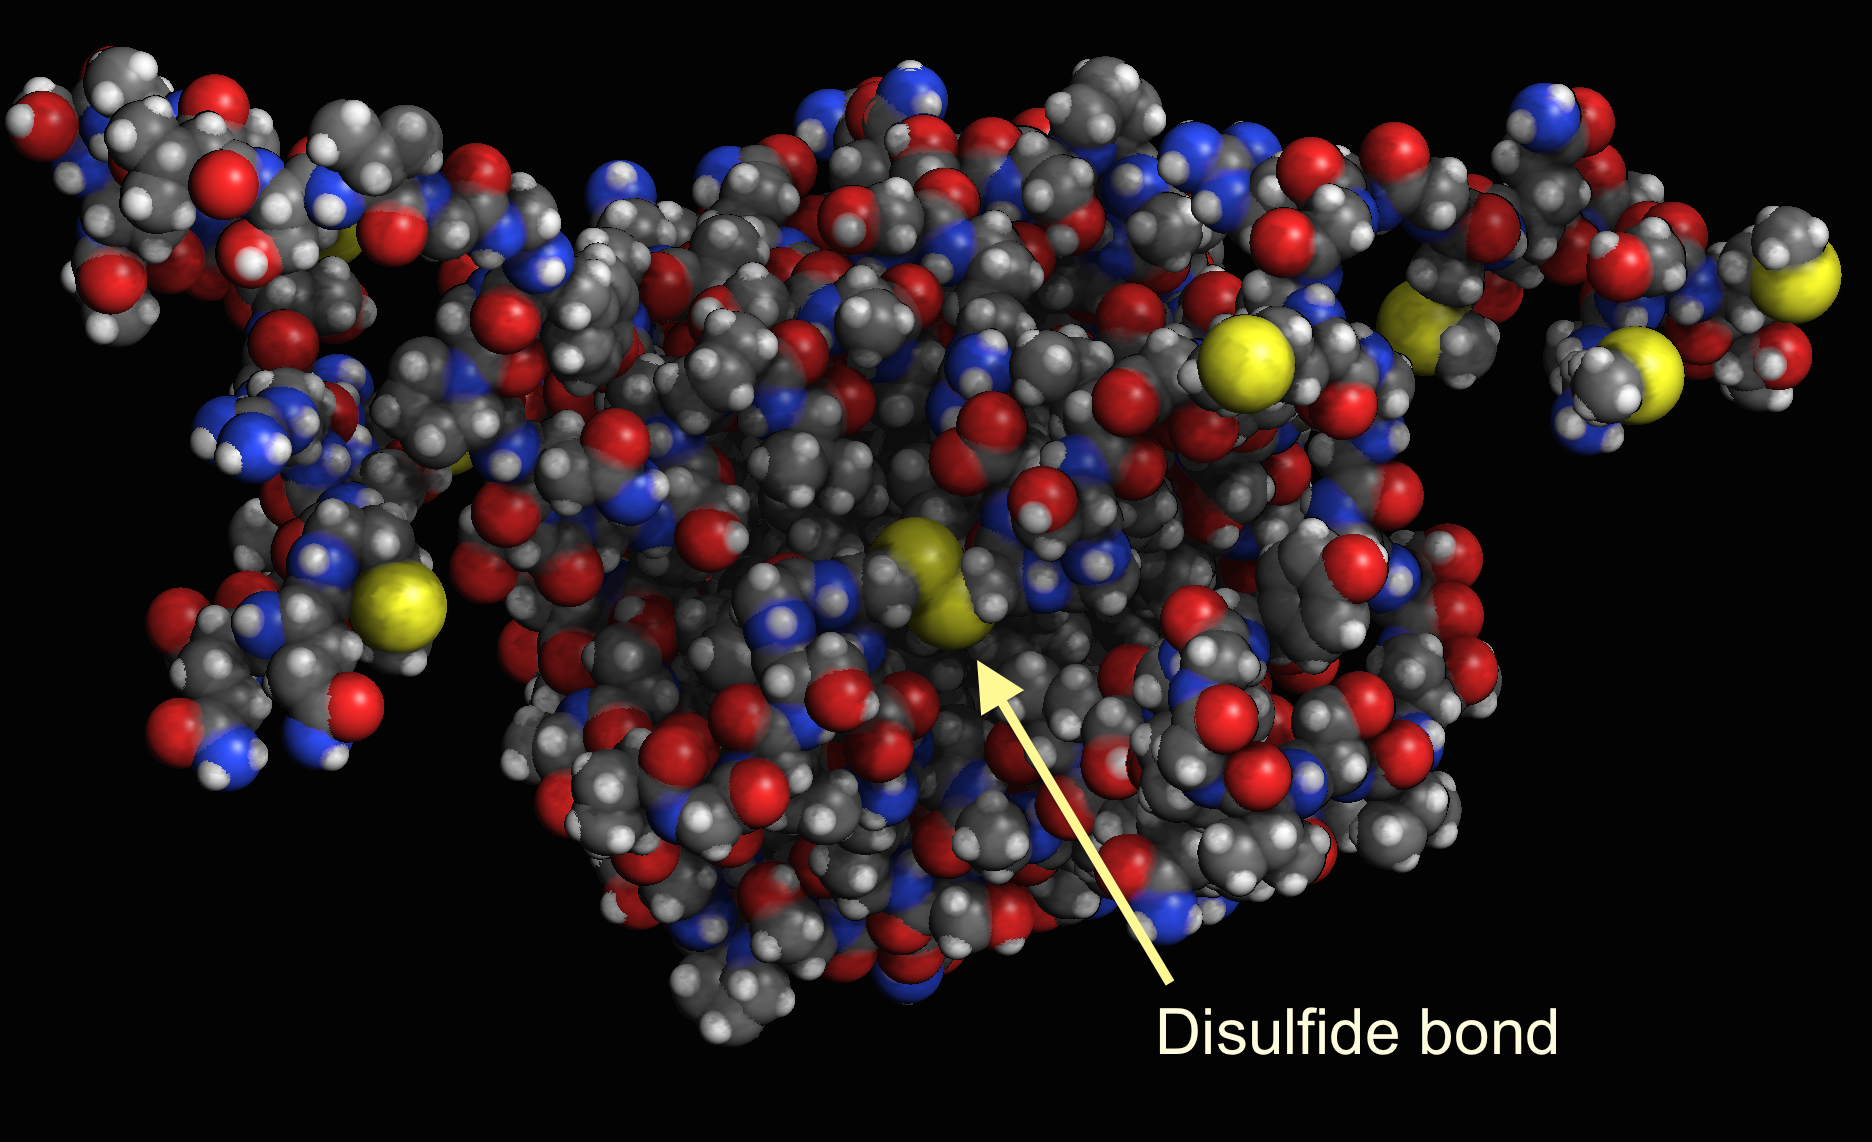 Disulfide bond between two protein chains.Image made in Molecule World.